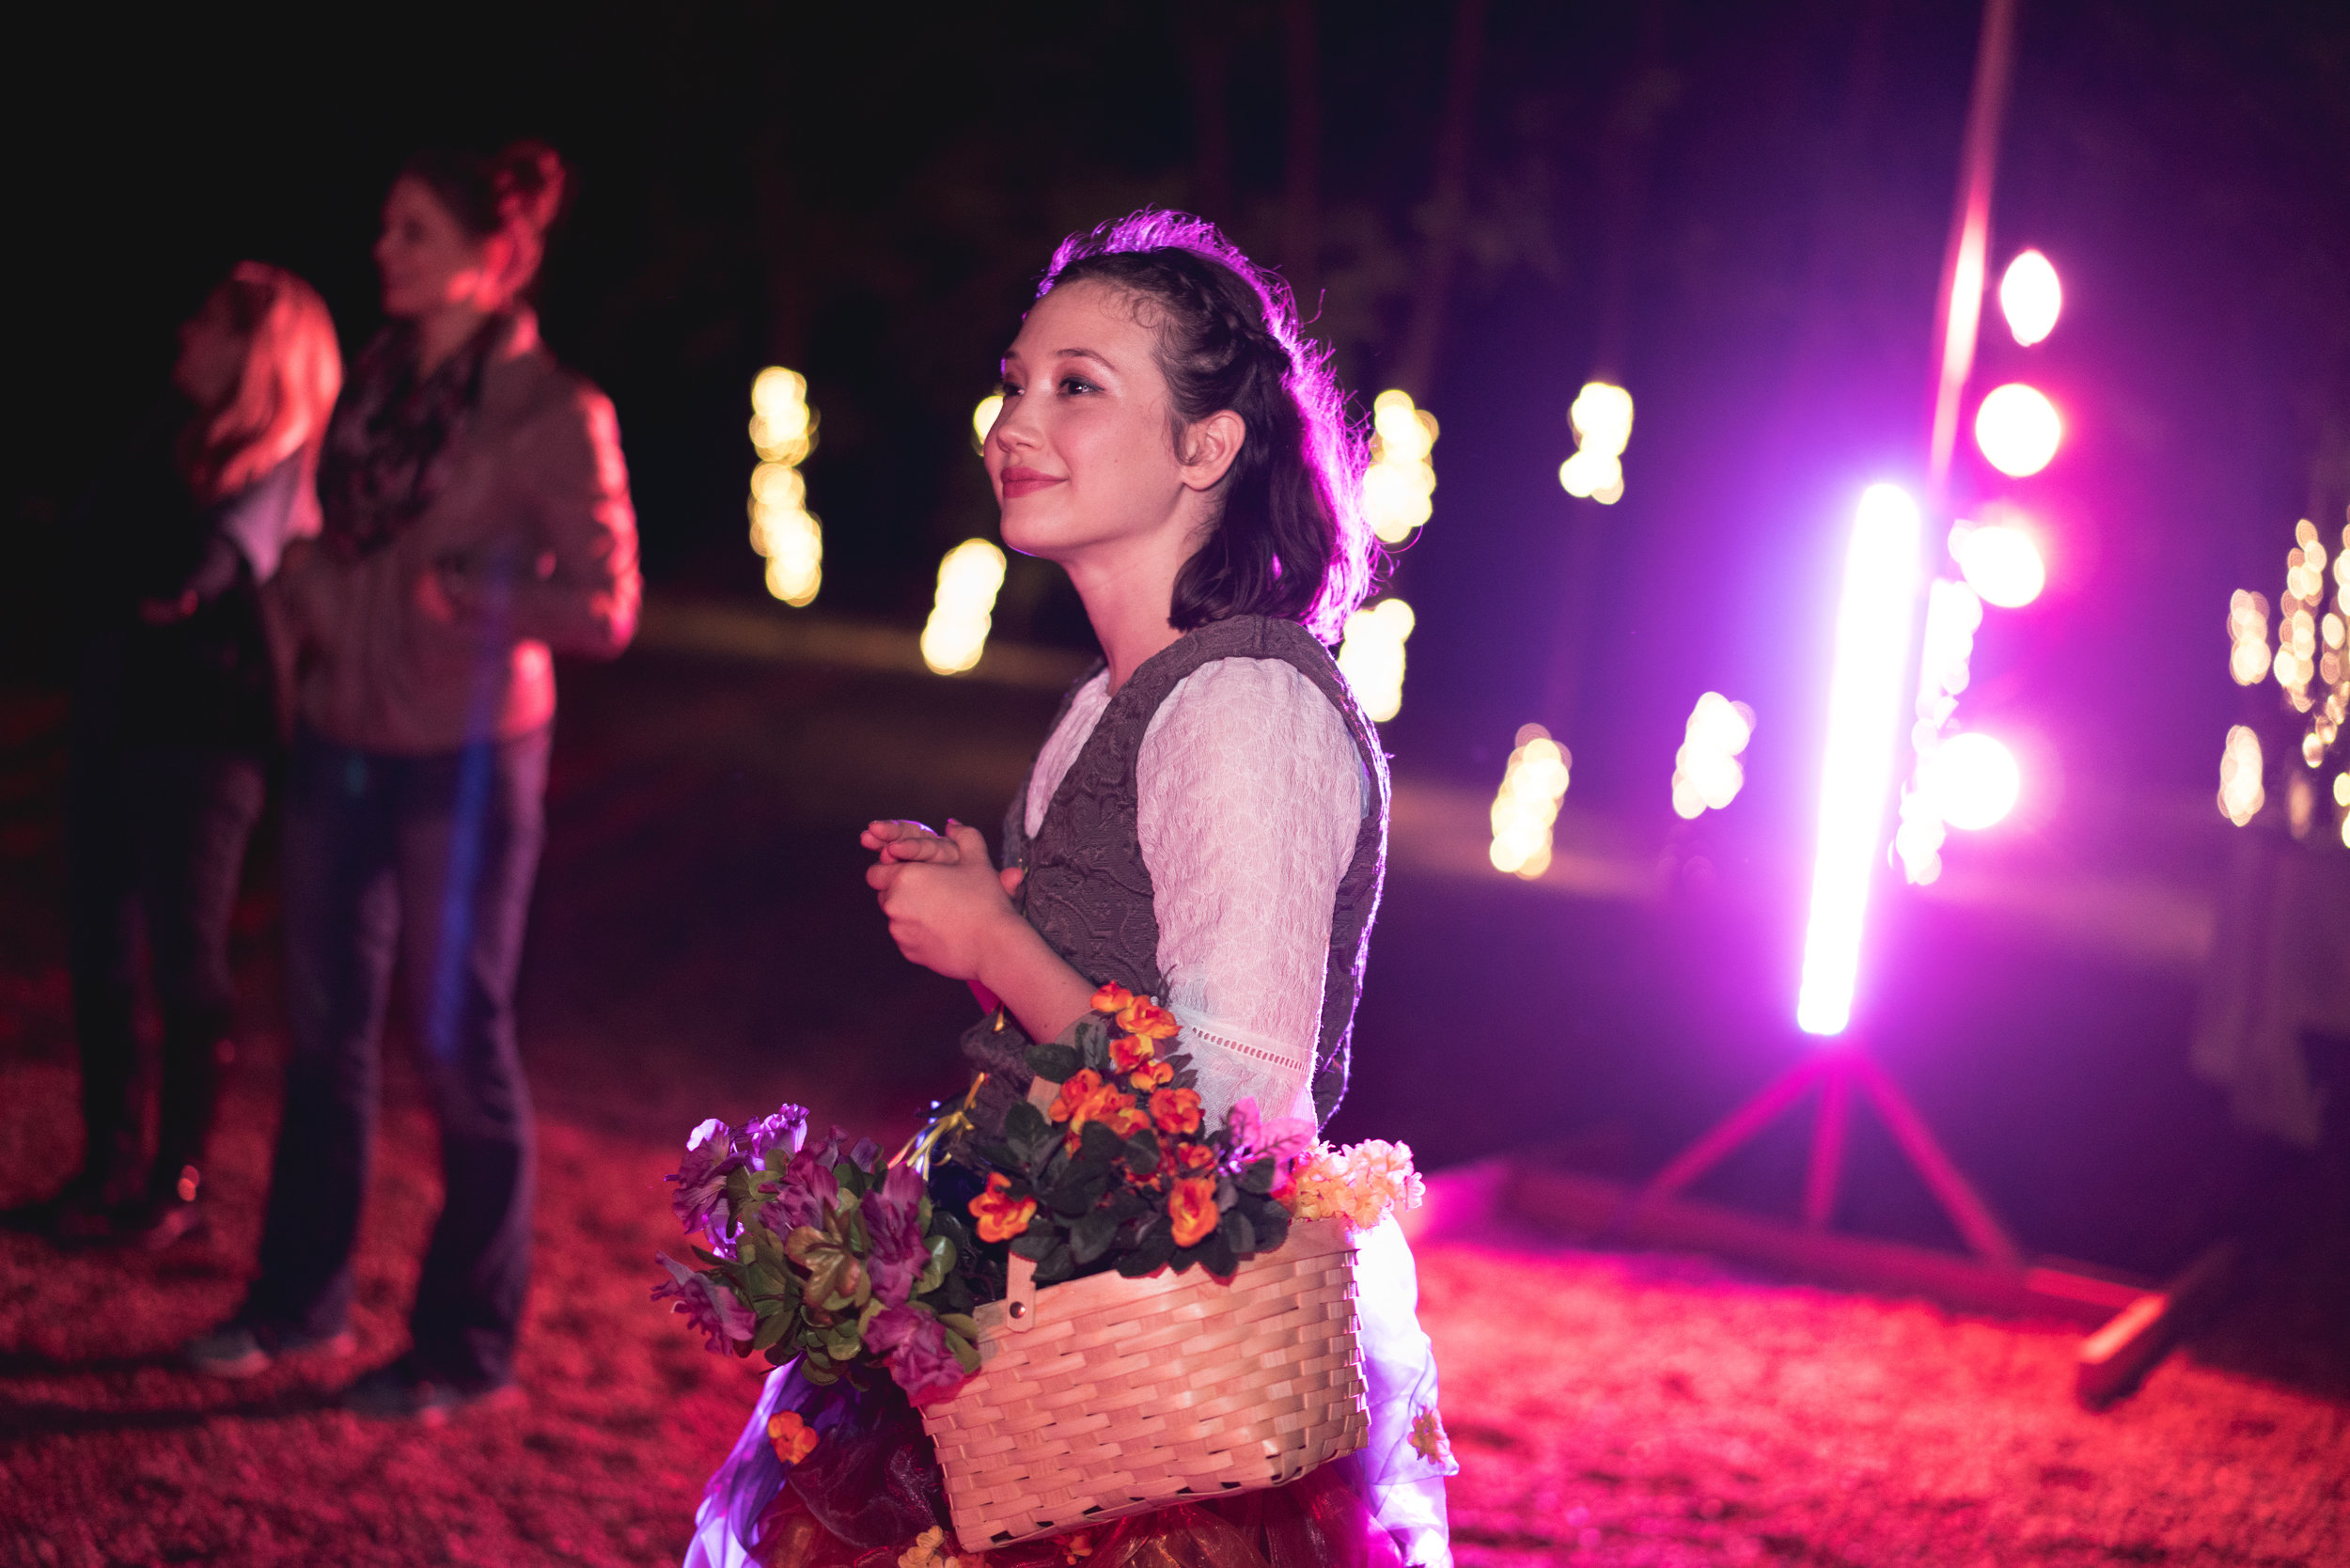 Renaissance actor carries flower basket during Austin dance theater performance outside